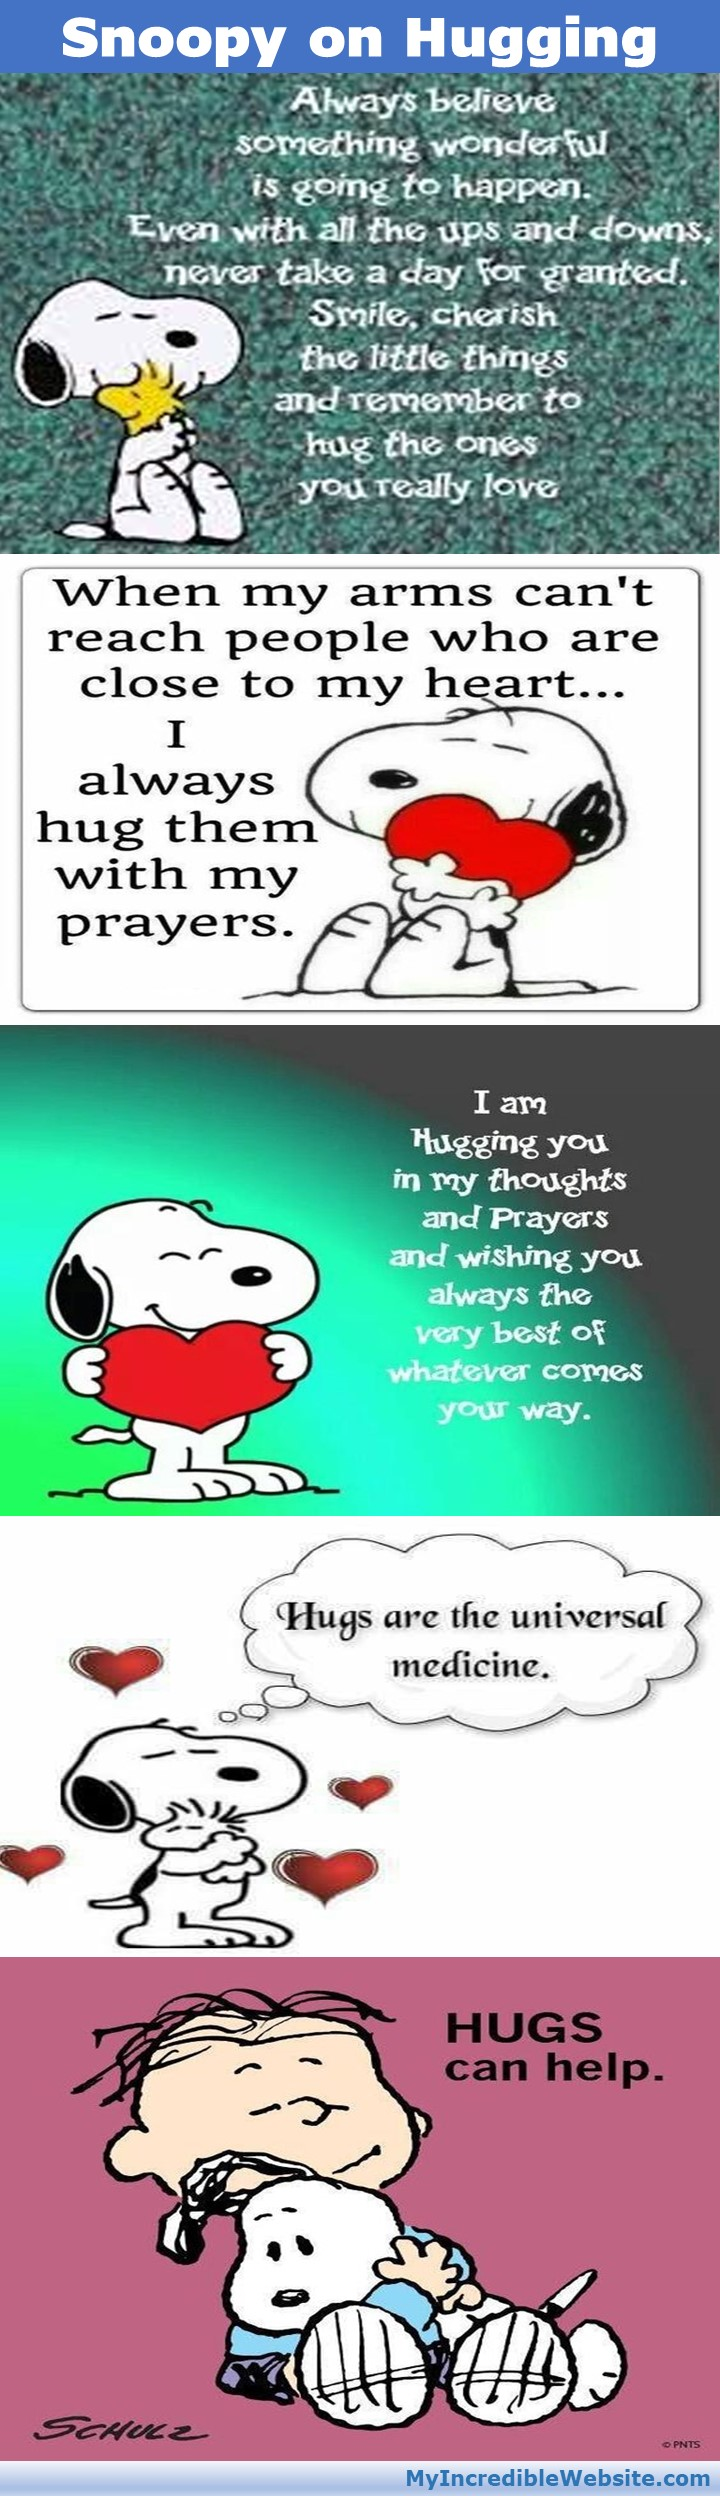 Snoopy on Hugging: Always believe something wonderful is going to happen. Even with all the ups and downs, never take a day for granted. Smile. Cherish the little things. And remember to hug the ones you really love.